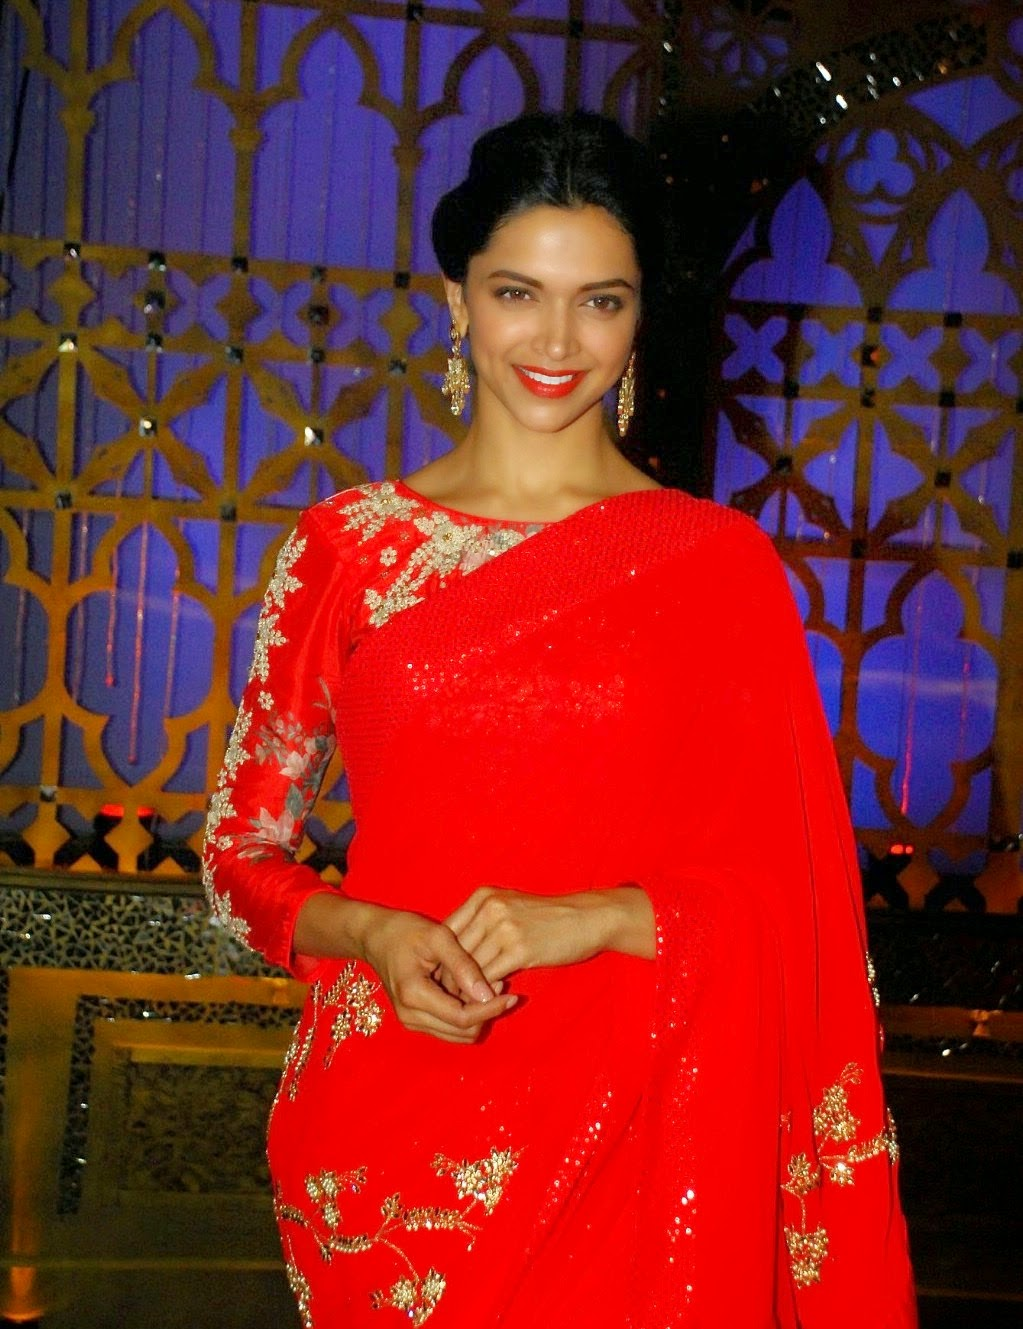 cinemagallery: Deepika Padukone Hot Stills In Red Saree